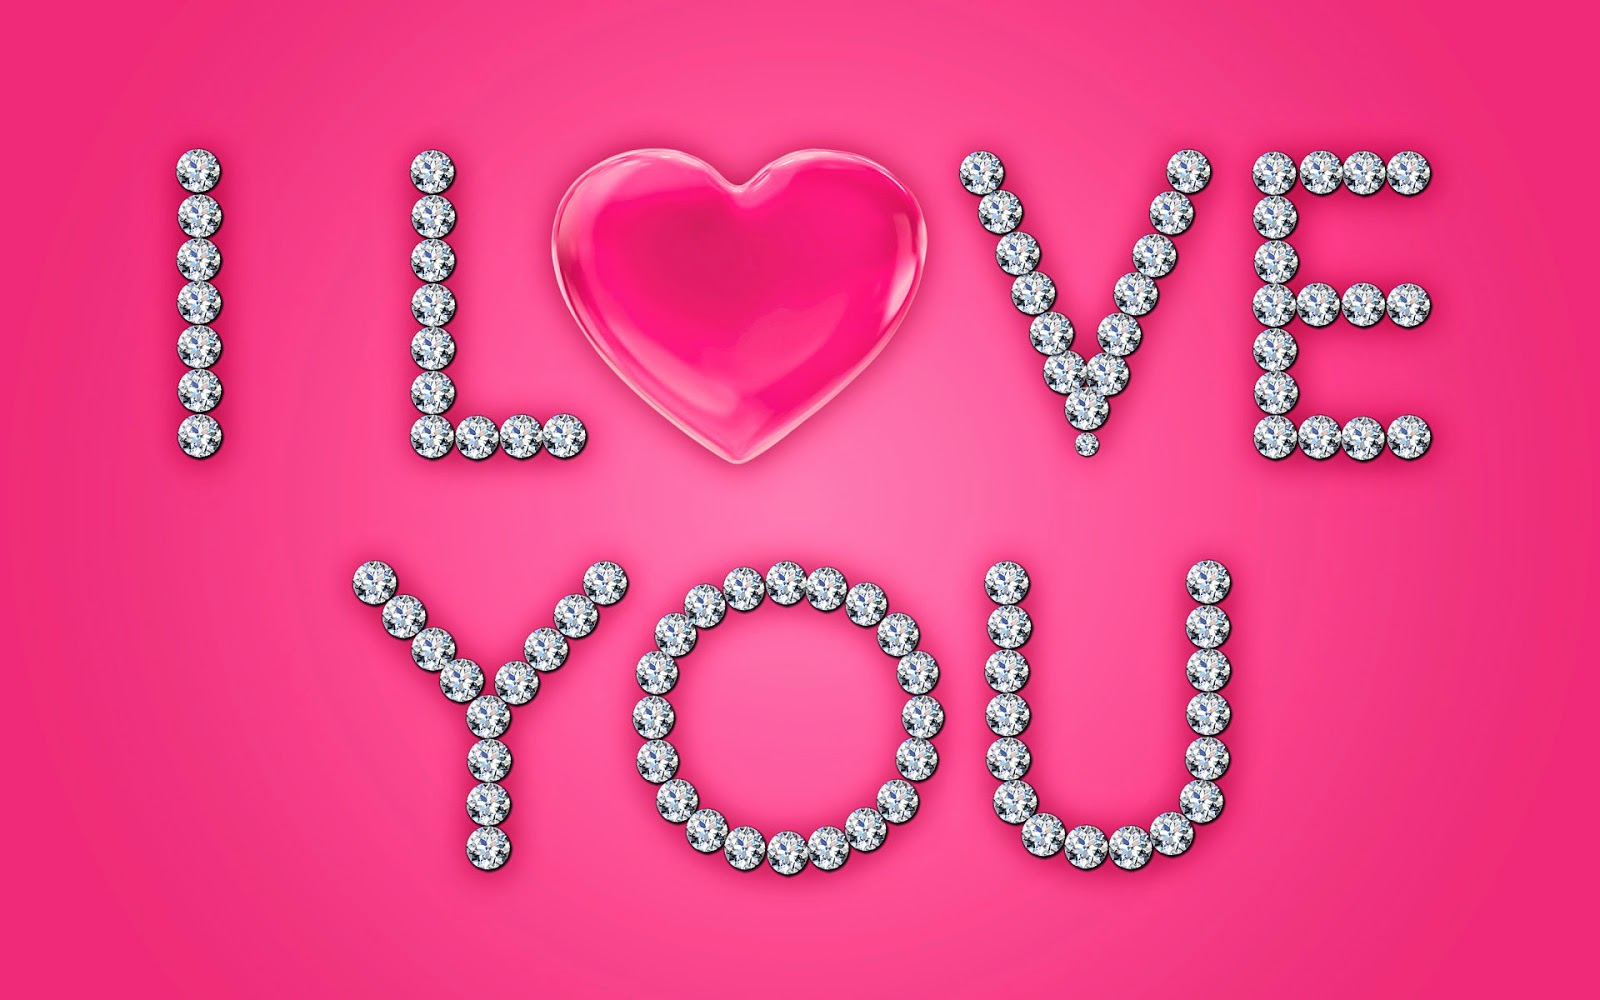 L Love You Hd Wallpaper : Bureaublad Achtergronden